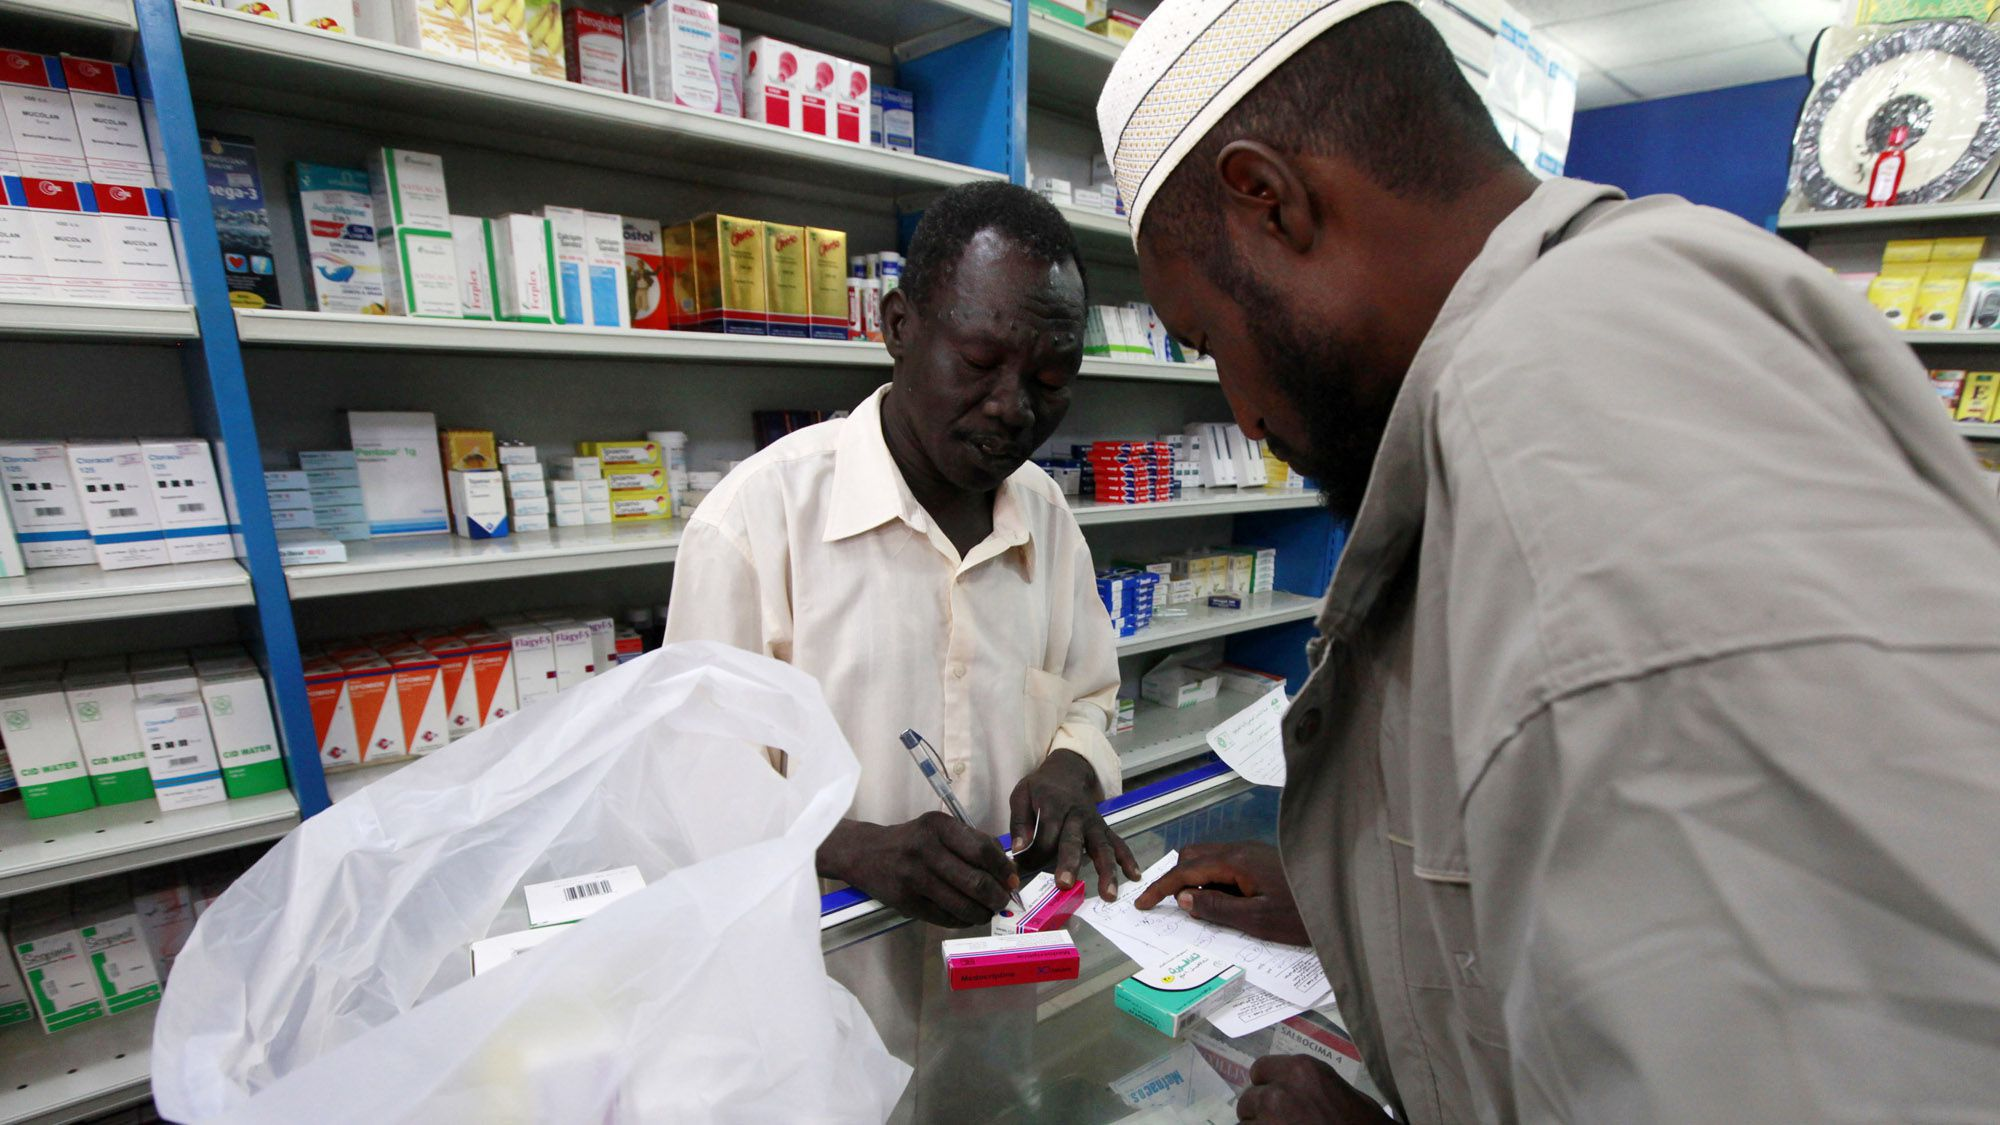 A customer buys medication at a pharmacy in Khartoum, January 24, 2012. Doing business has never been easy in Sudan, which suffers from a U.S. trade embargo, poverty, high inflation and the legacy of years of armed conflict. Even so the country, home to 32 million people and rich in oil, minerals such as gold and copper, and vast areas of farmland, has always attracted investors who do not mind taking some risks. But the investment climate has deteriorated further since South Sudan took away two-thirds of the country's oil production when it seceded in July.  Picture taken January 24, 2012. To match feature SUDAN-INVESTMENT   REUTERS/ Mohamed Nureldin Abdallah (SUDAN - Tags: BUSINESS POLITICS) - RTR2WU0T